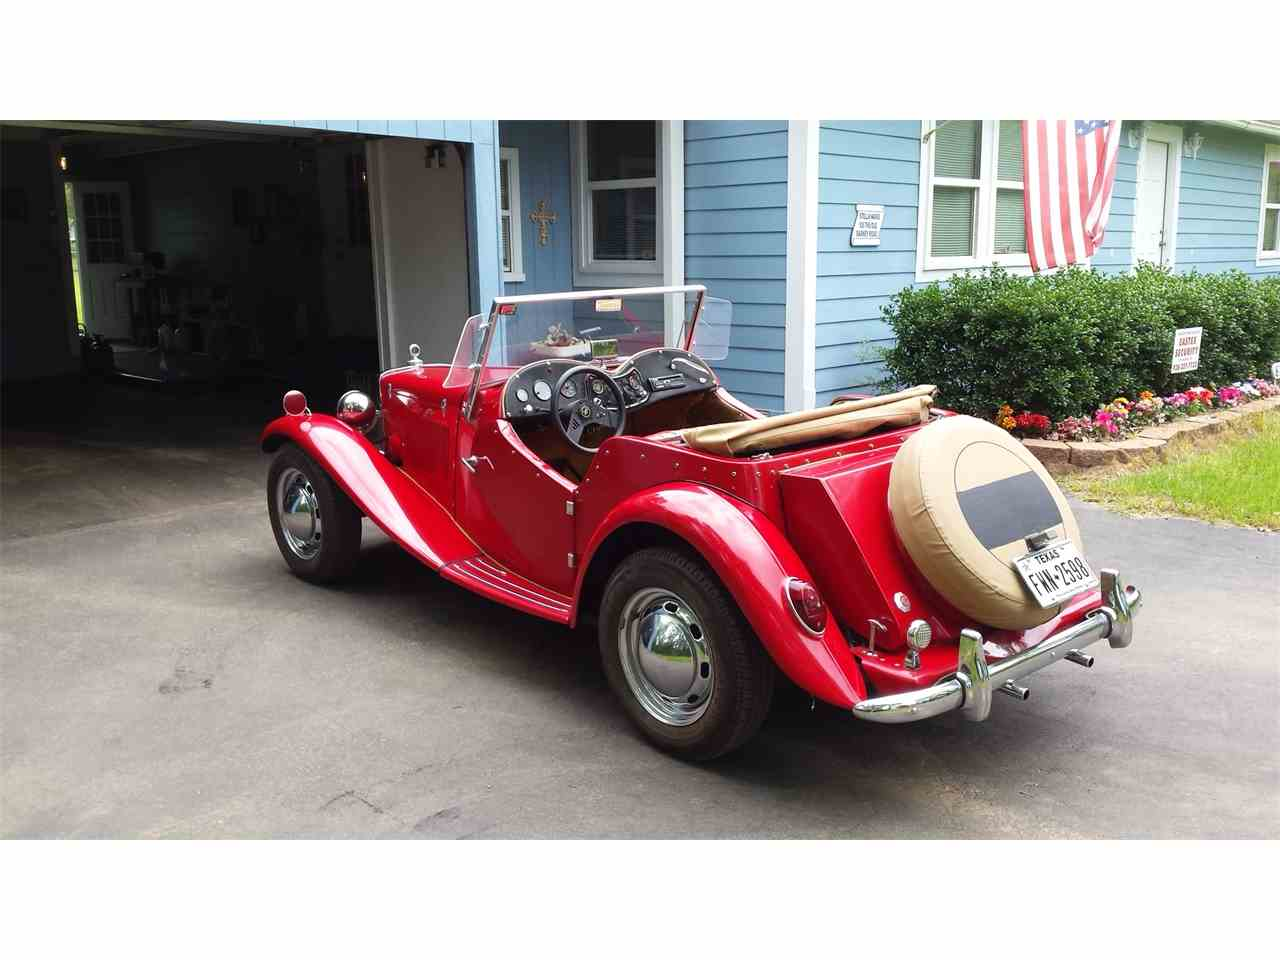 Large Picture of Classic '52 MG TD located in Escondido California - $9,999.00 - IR3X